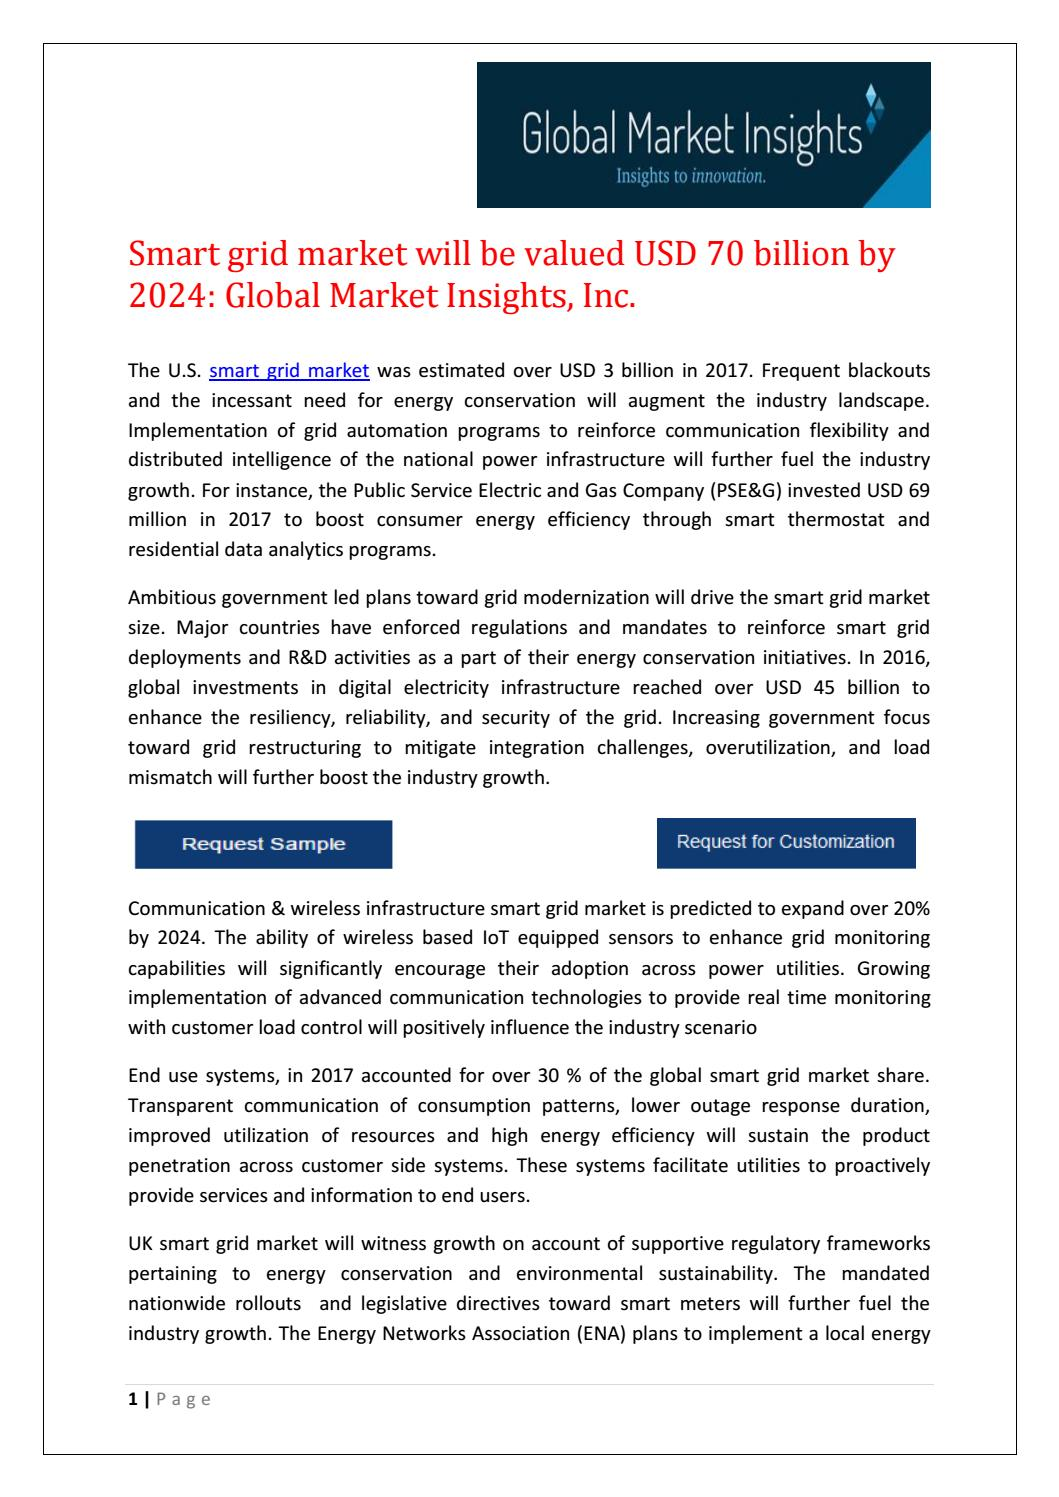 Smart grid market in china will be valued USD 40 billion by